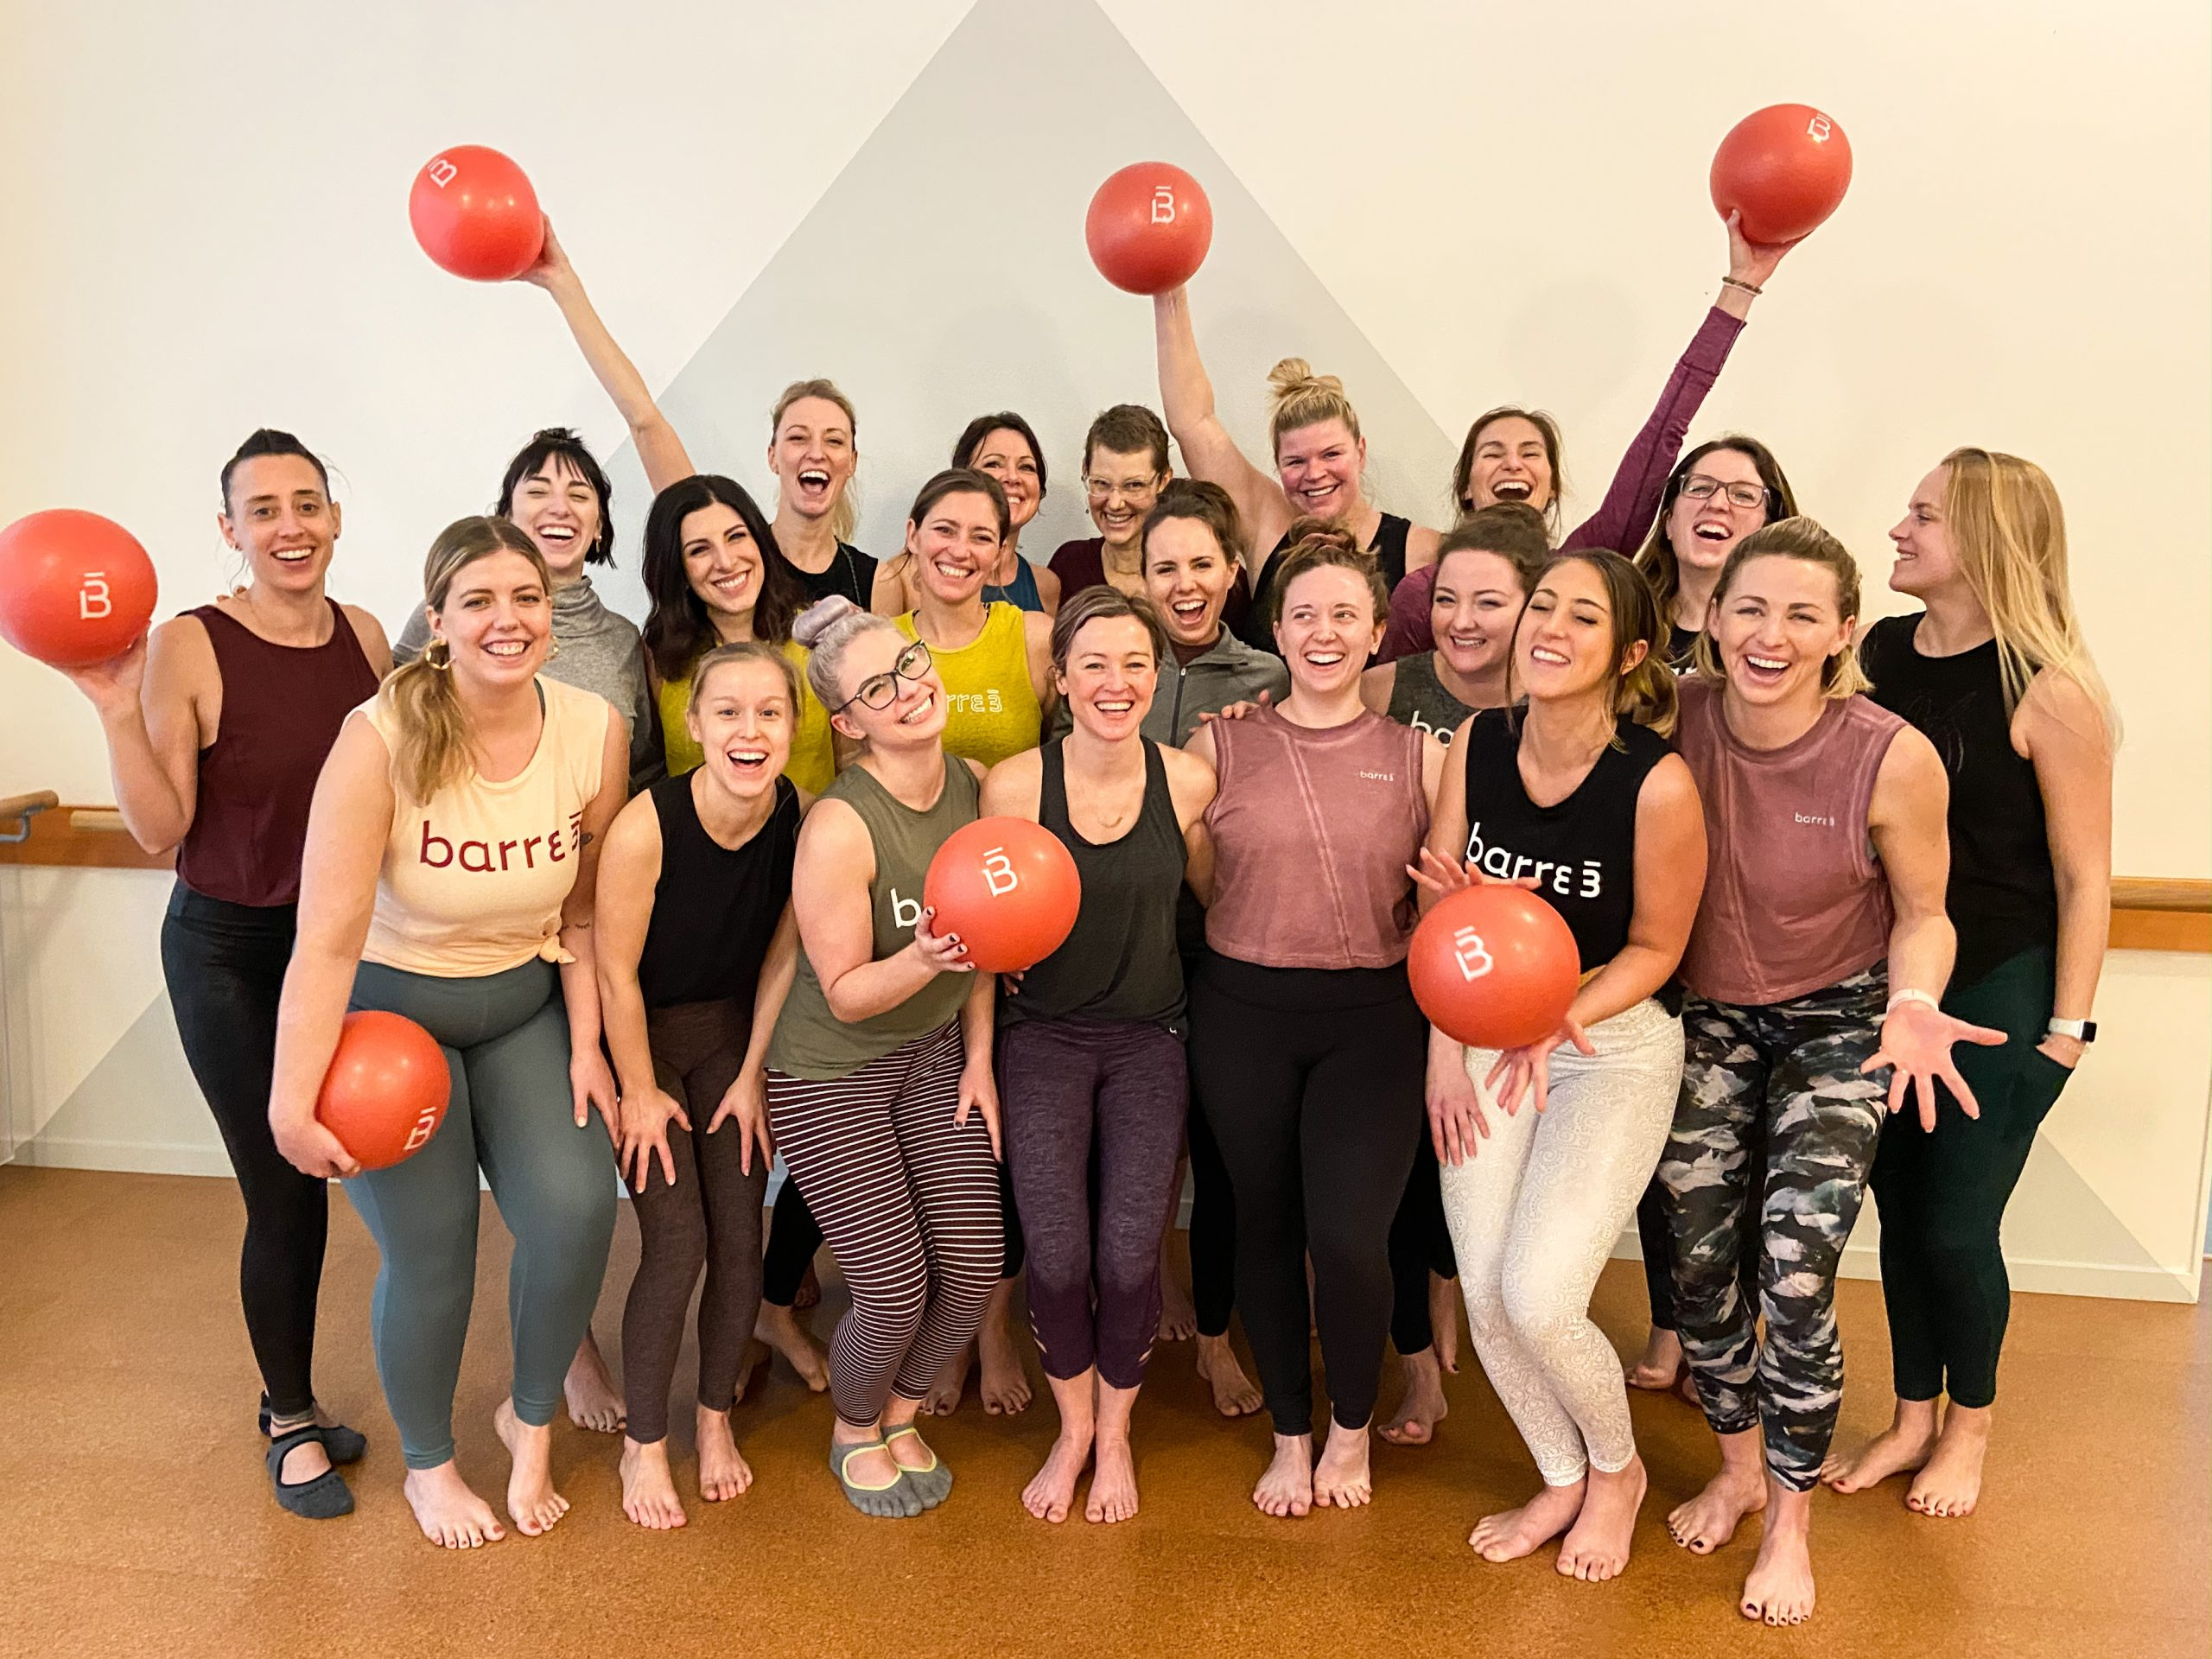 barre3 instrutor training group